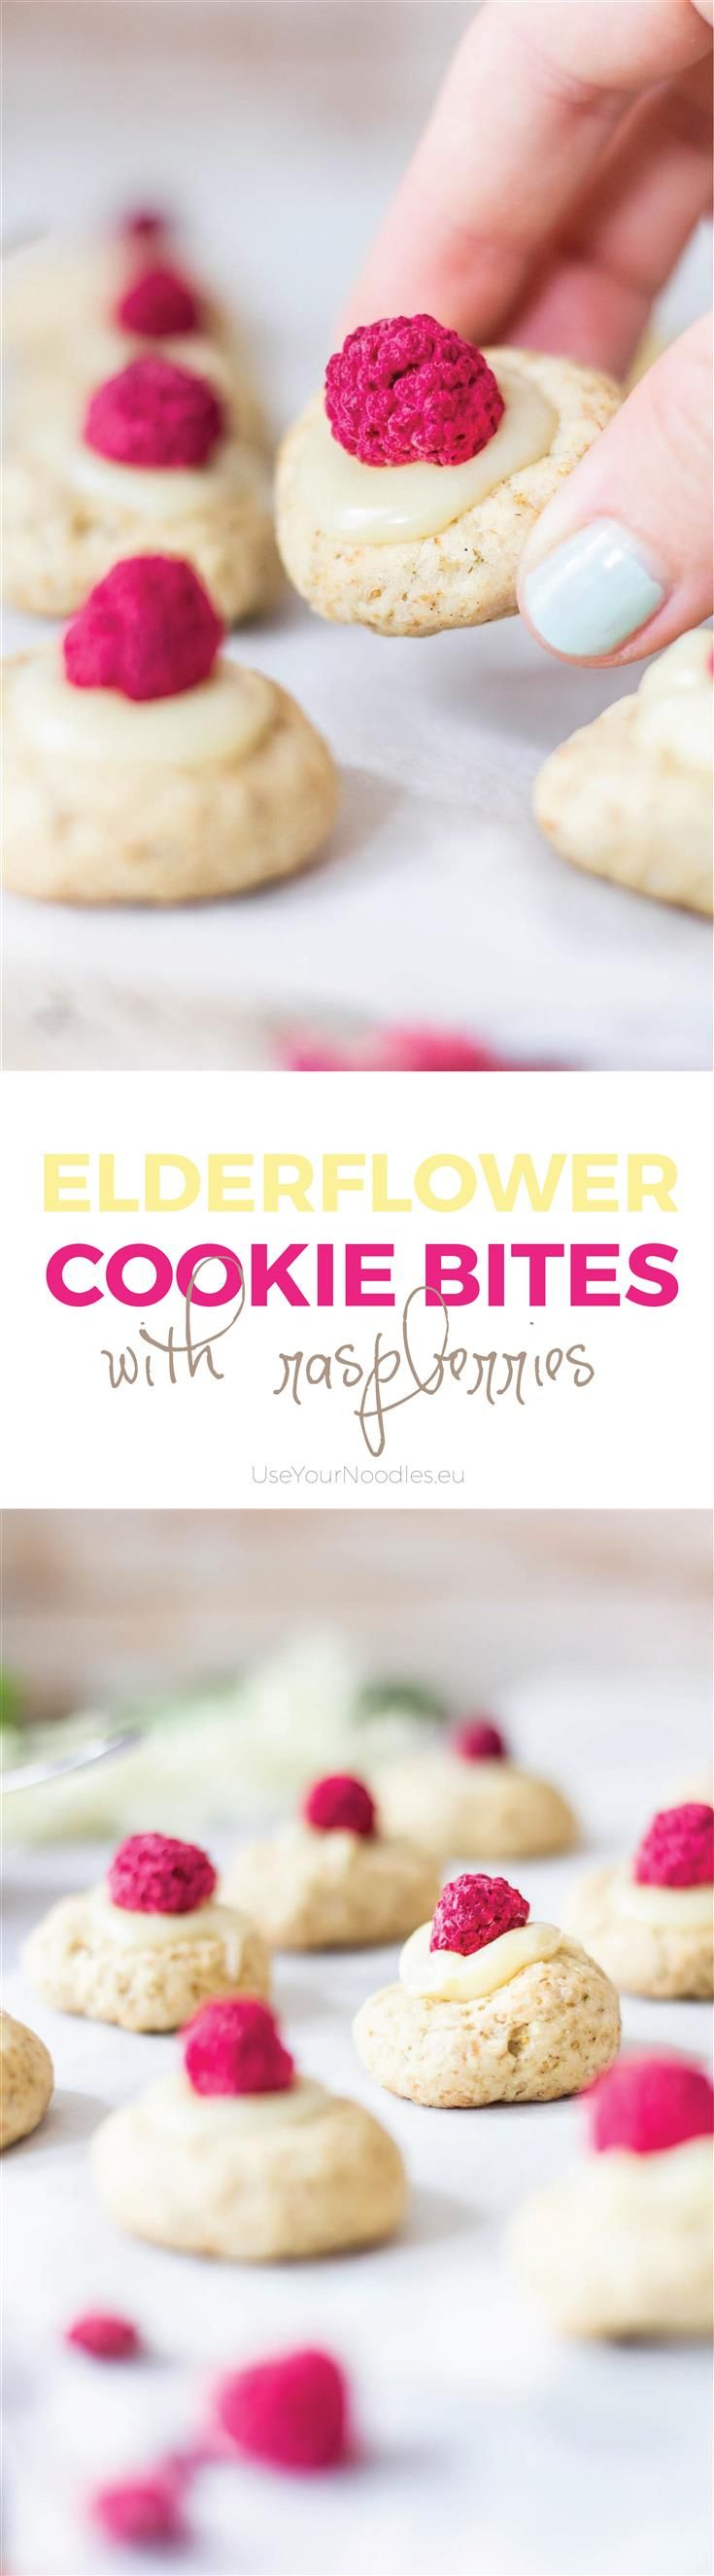 Buttery elderflower cookies topped with rose water white chocolate cream and freeze-dried raspberries. Perfect little fancy bites!